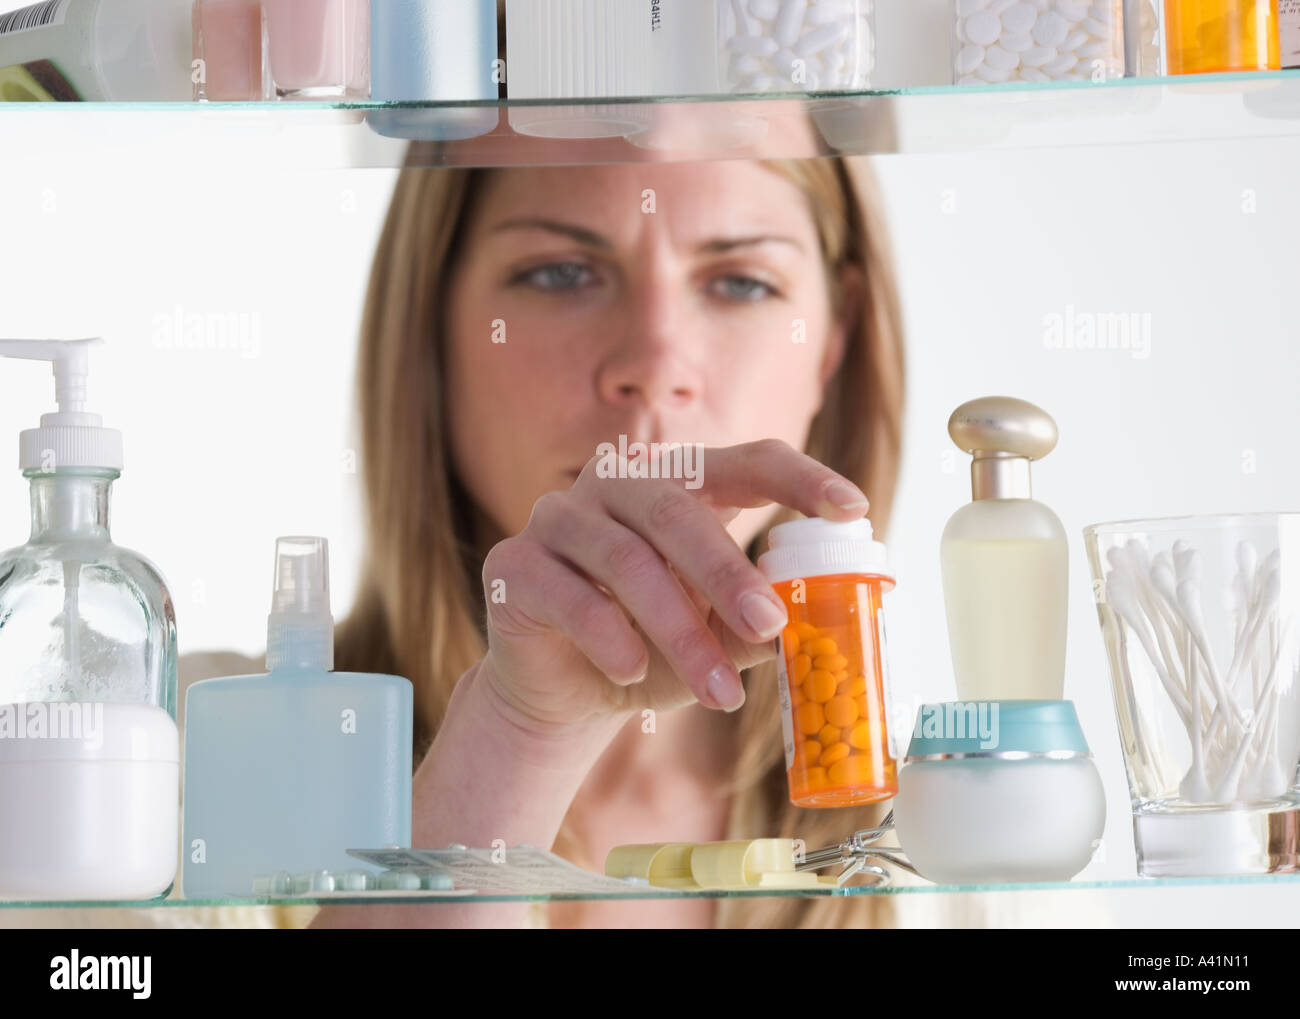 Woman removing medicine from cabinet - Stock Image